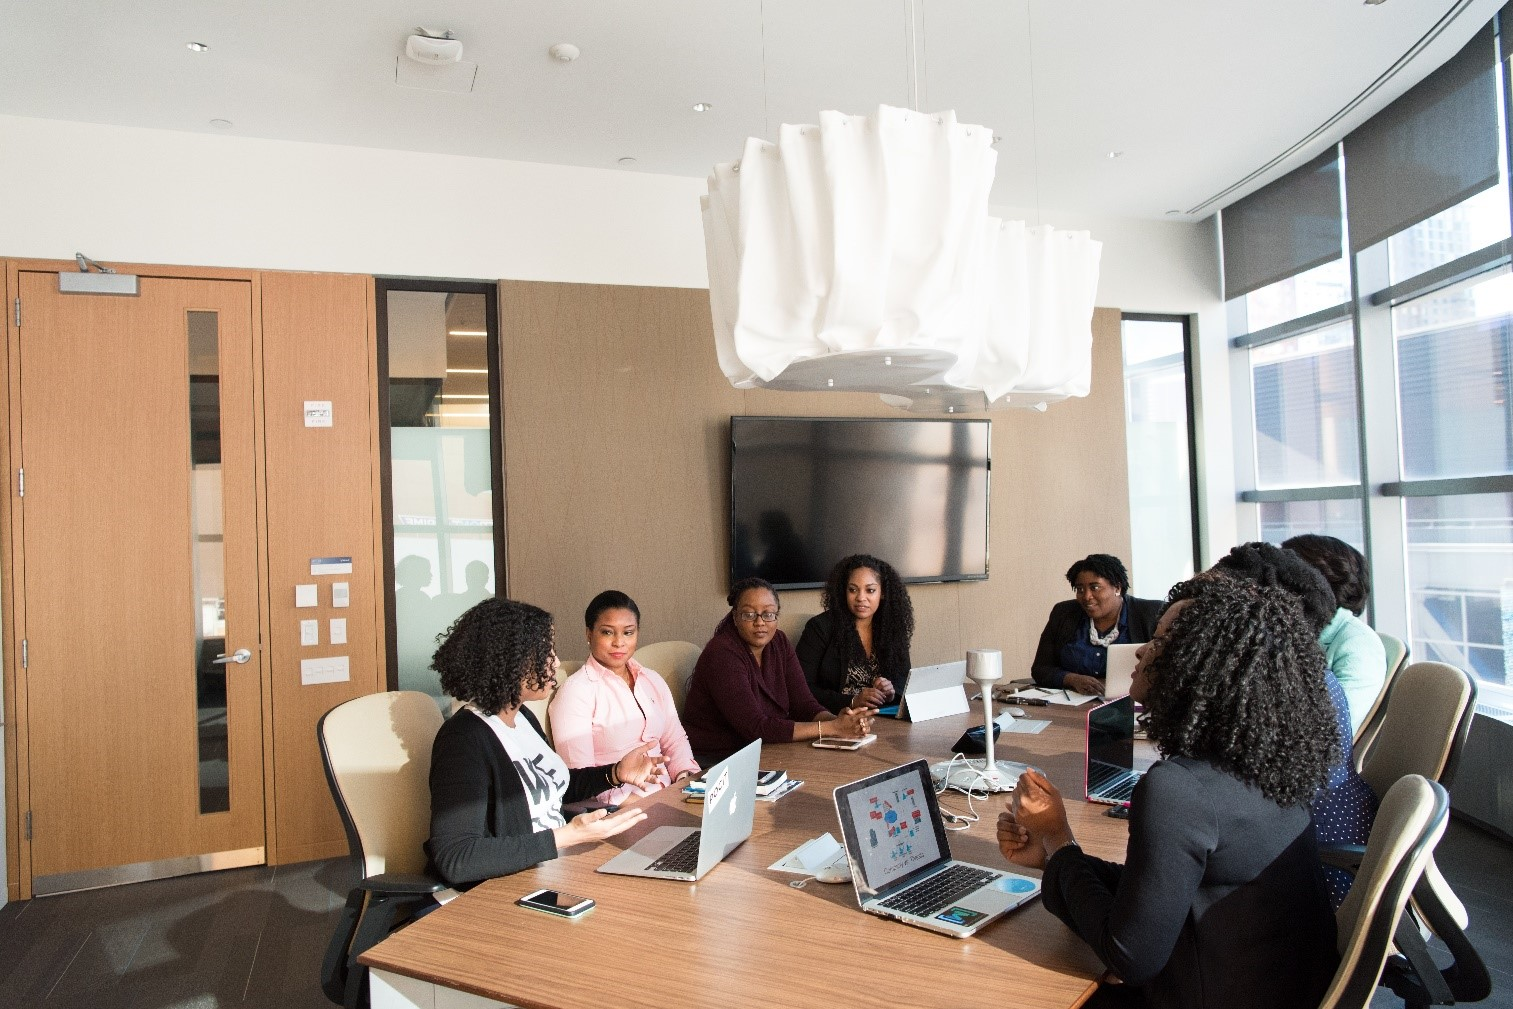 Women in a meeting sit at a table in a boardroom